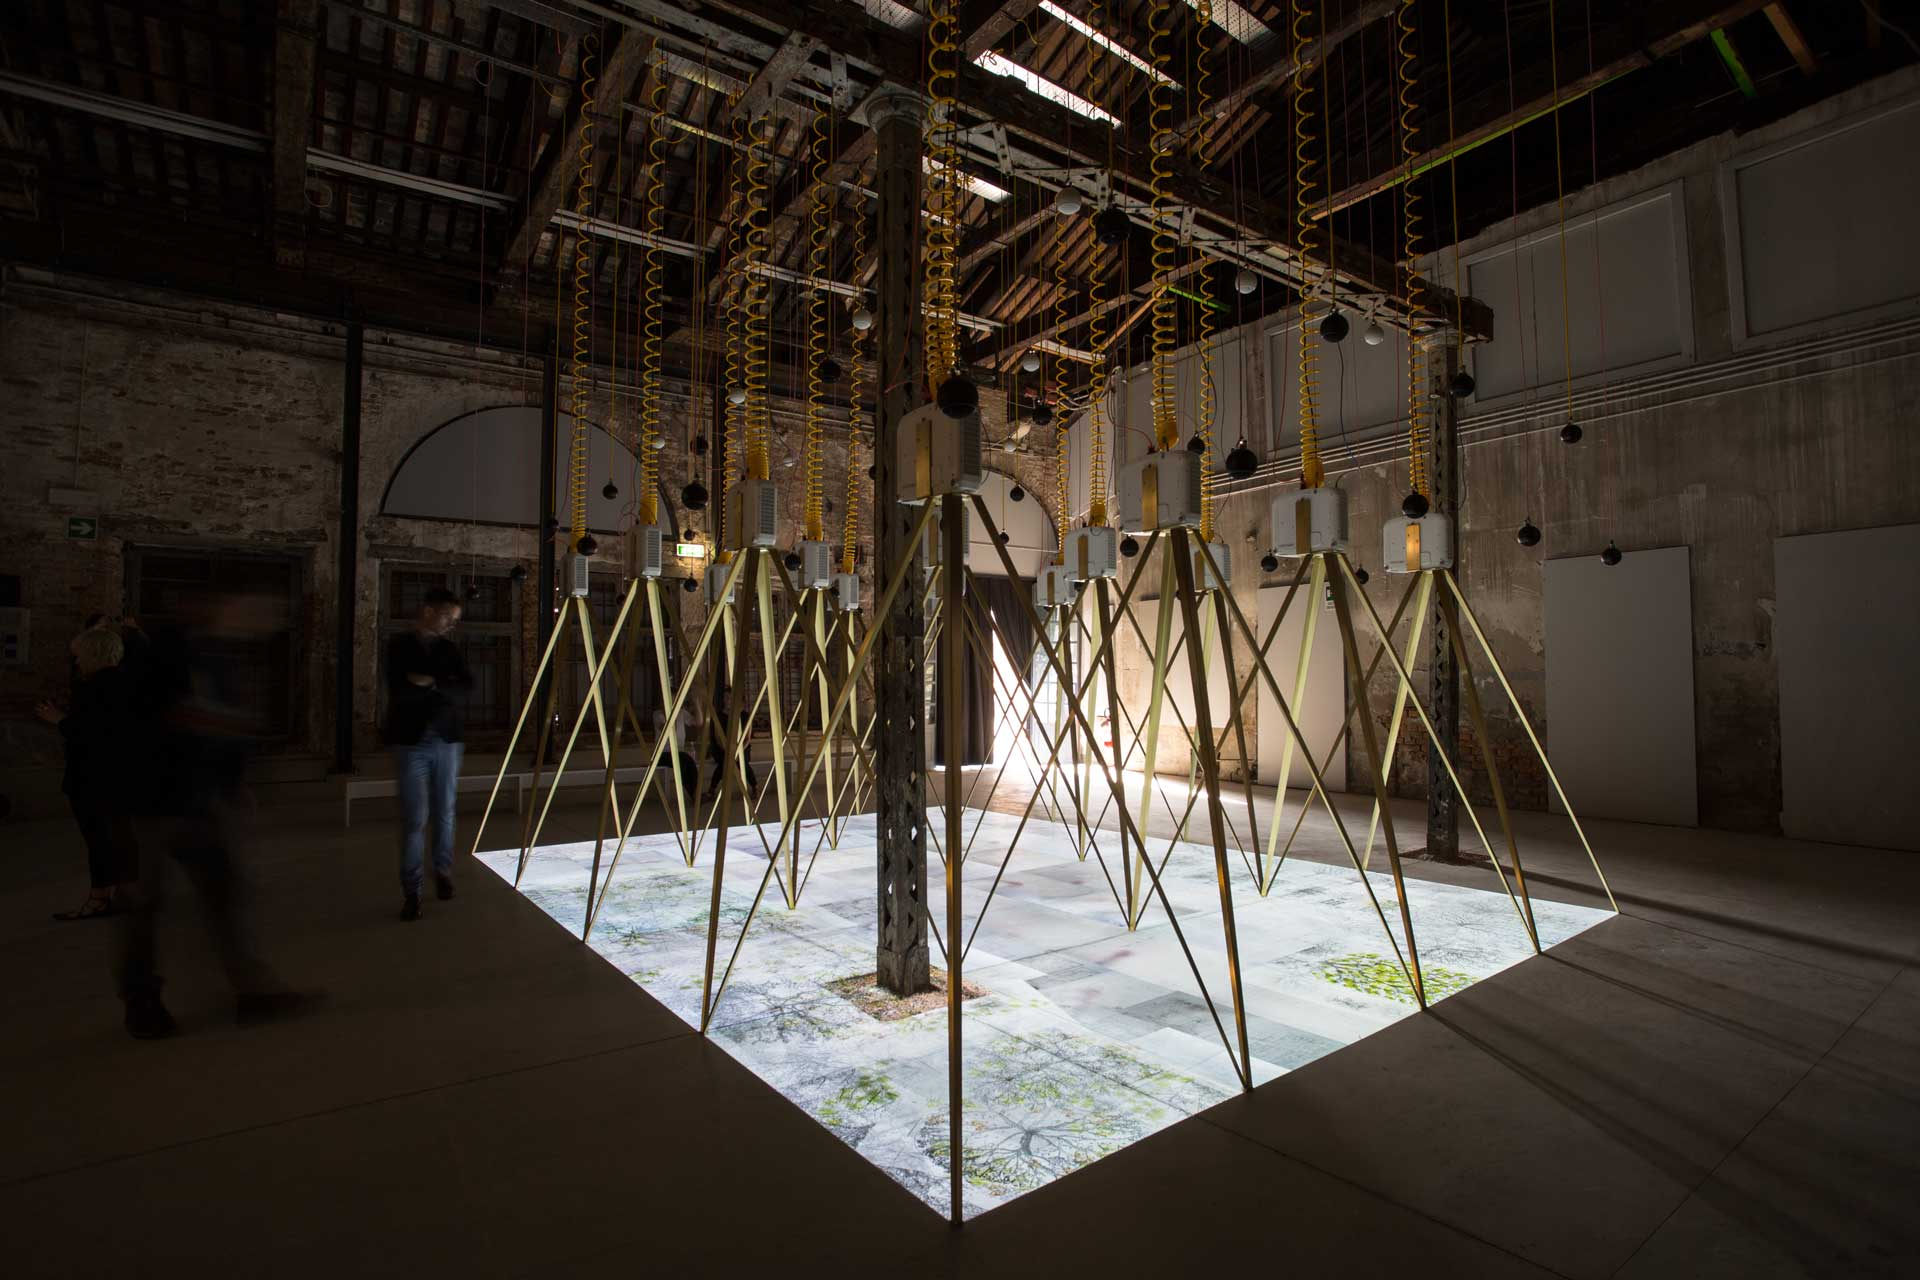 Loosing-Myself-Arsenale-Architecture-Venice-Biennale-Ireland-Pavilion